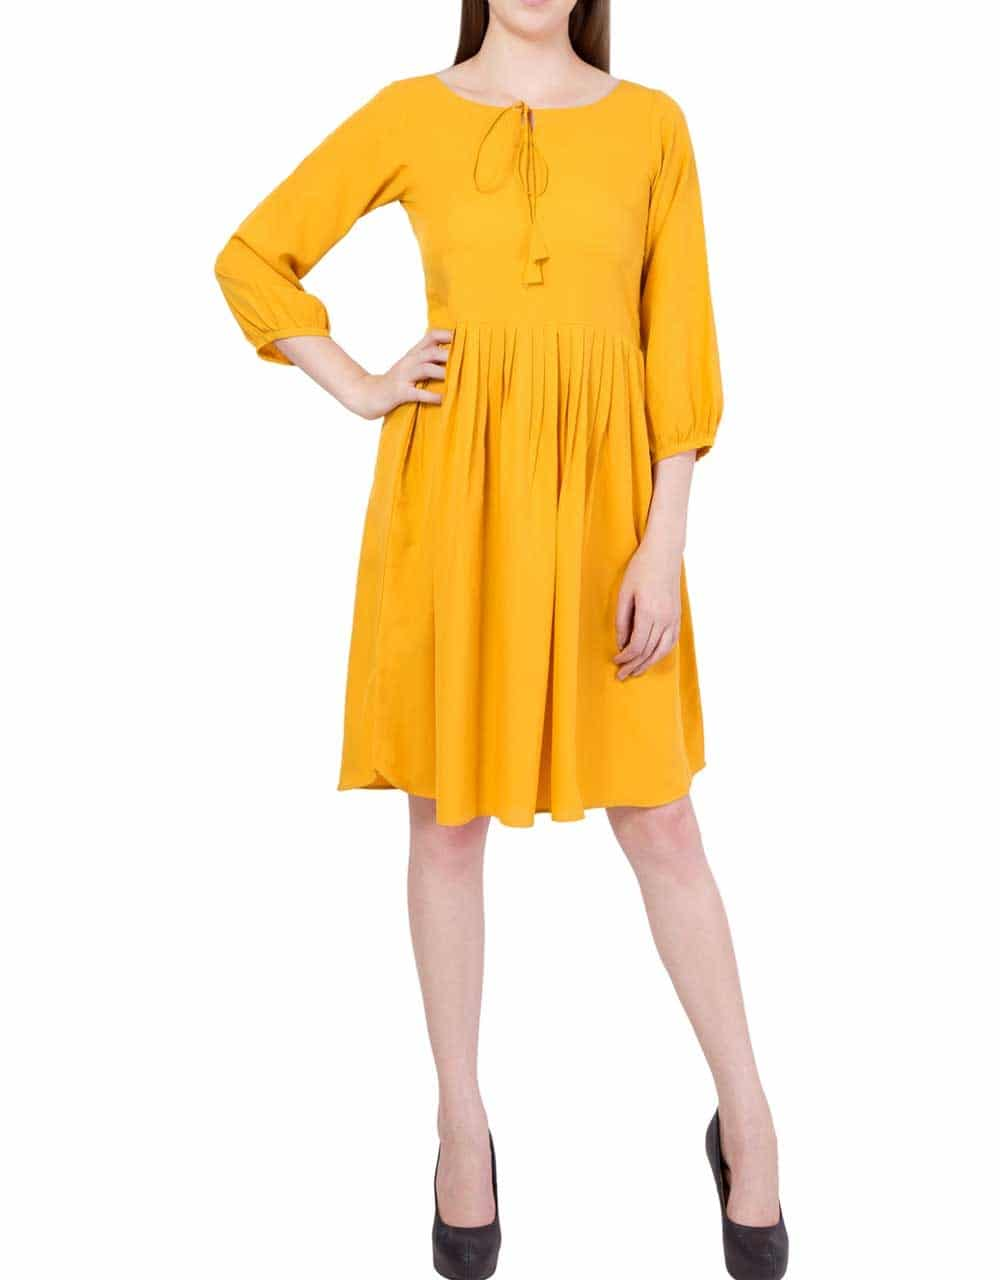 Color of the year, this bright mustard yellow dress is the answer to all your fashion worries. With long bishop sleeves and a gathered skirt, this knee length dress is bound to flatter you. Wear it to a casual day out or a night with friends, you can style it up or down according to your wish. Simbha Women's Yellow Peasant Dress 👉👉 Shop now @ #simbhacreations, contact or whatsapp on 9560184087 #dresses